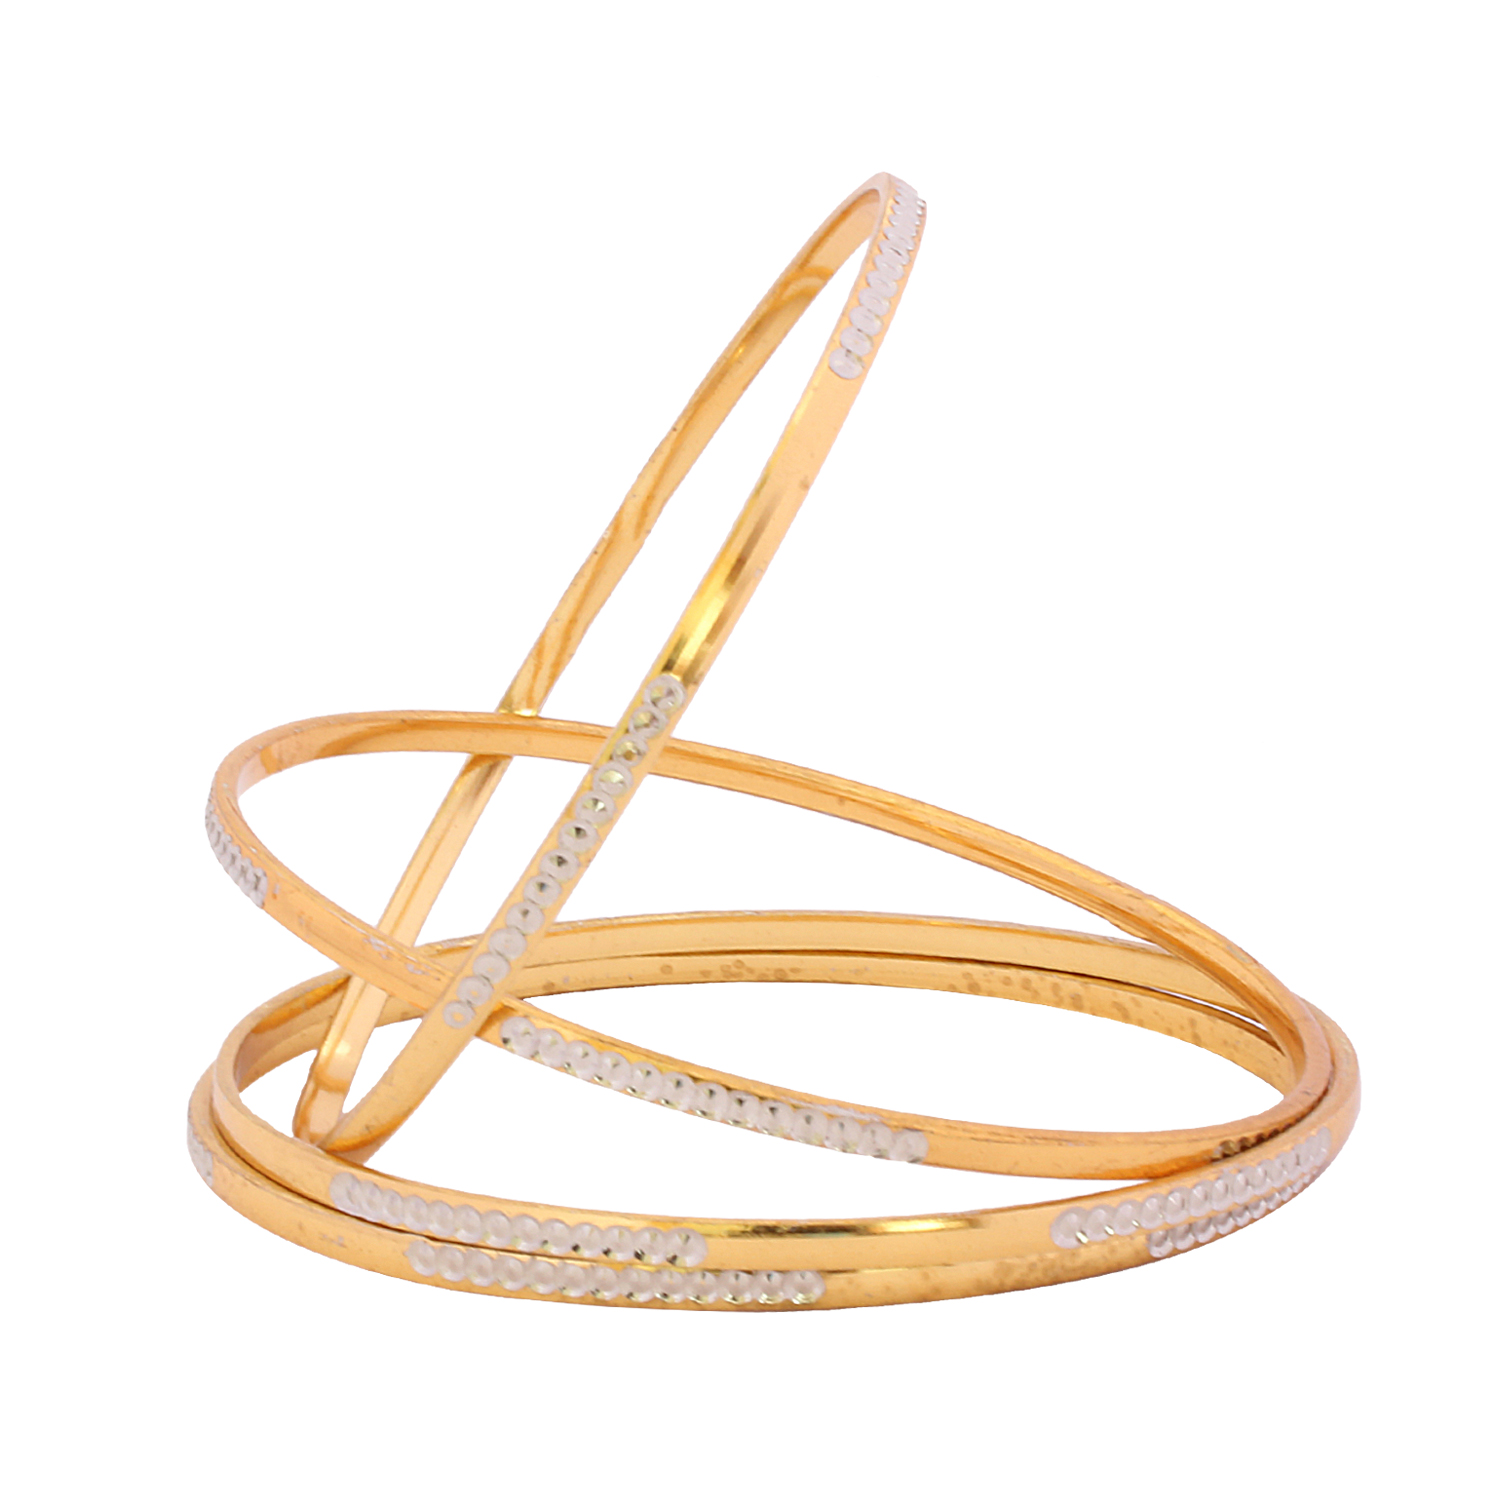 halcyon gold plain bangle skinny and days bracelet bangles cream